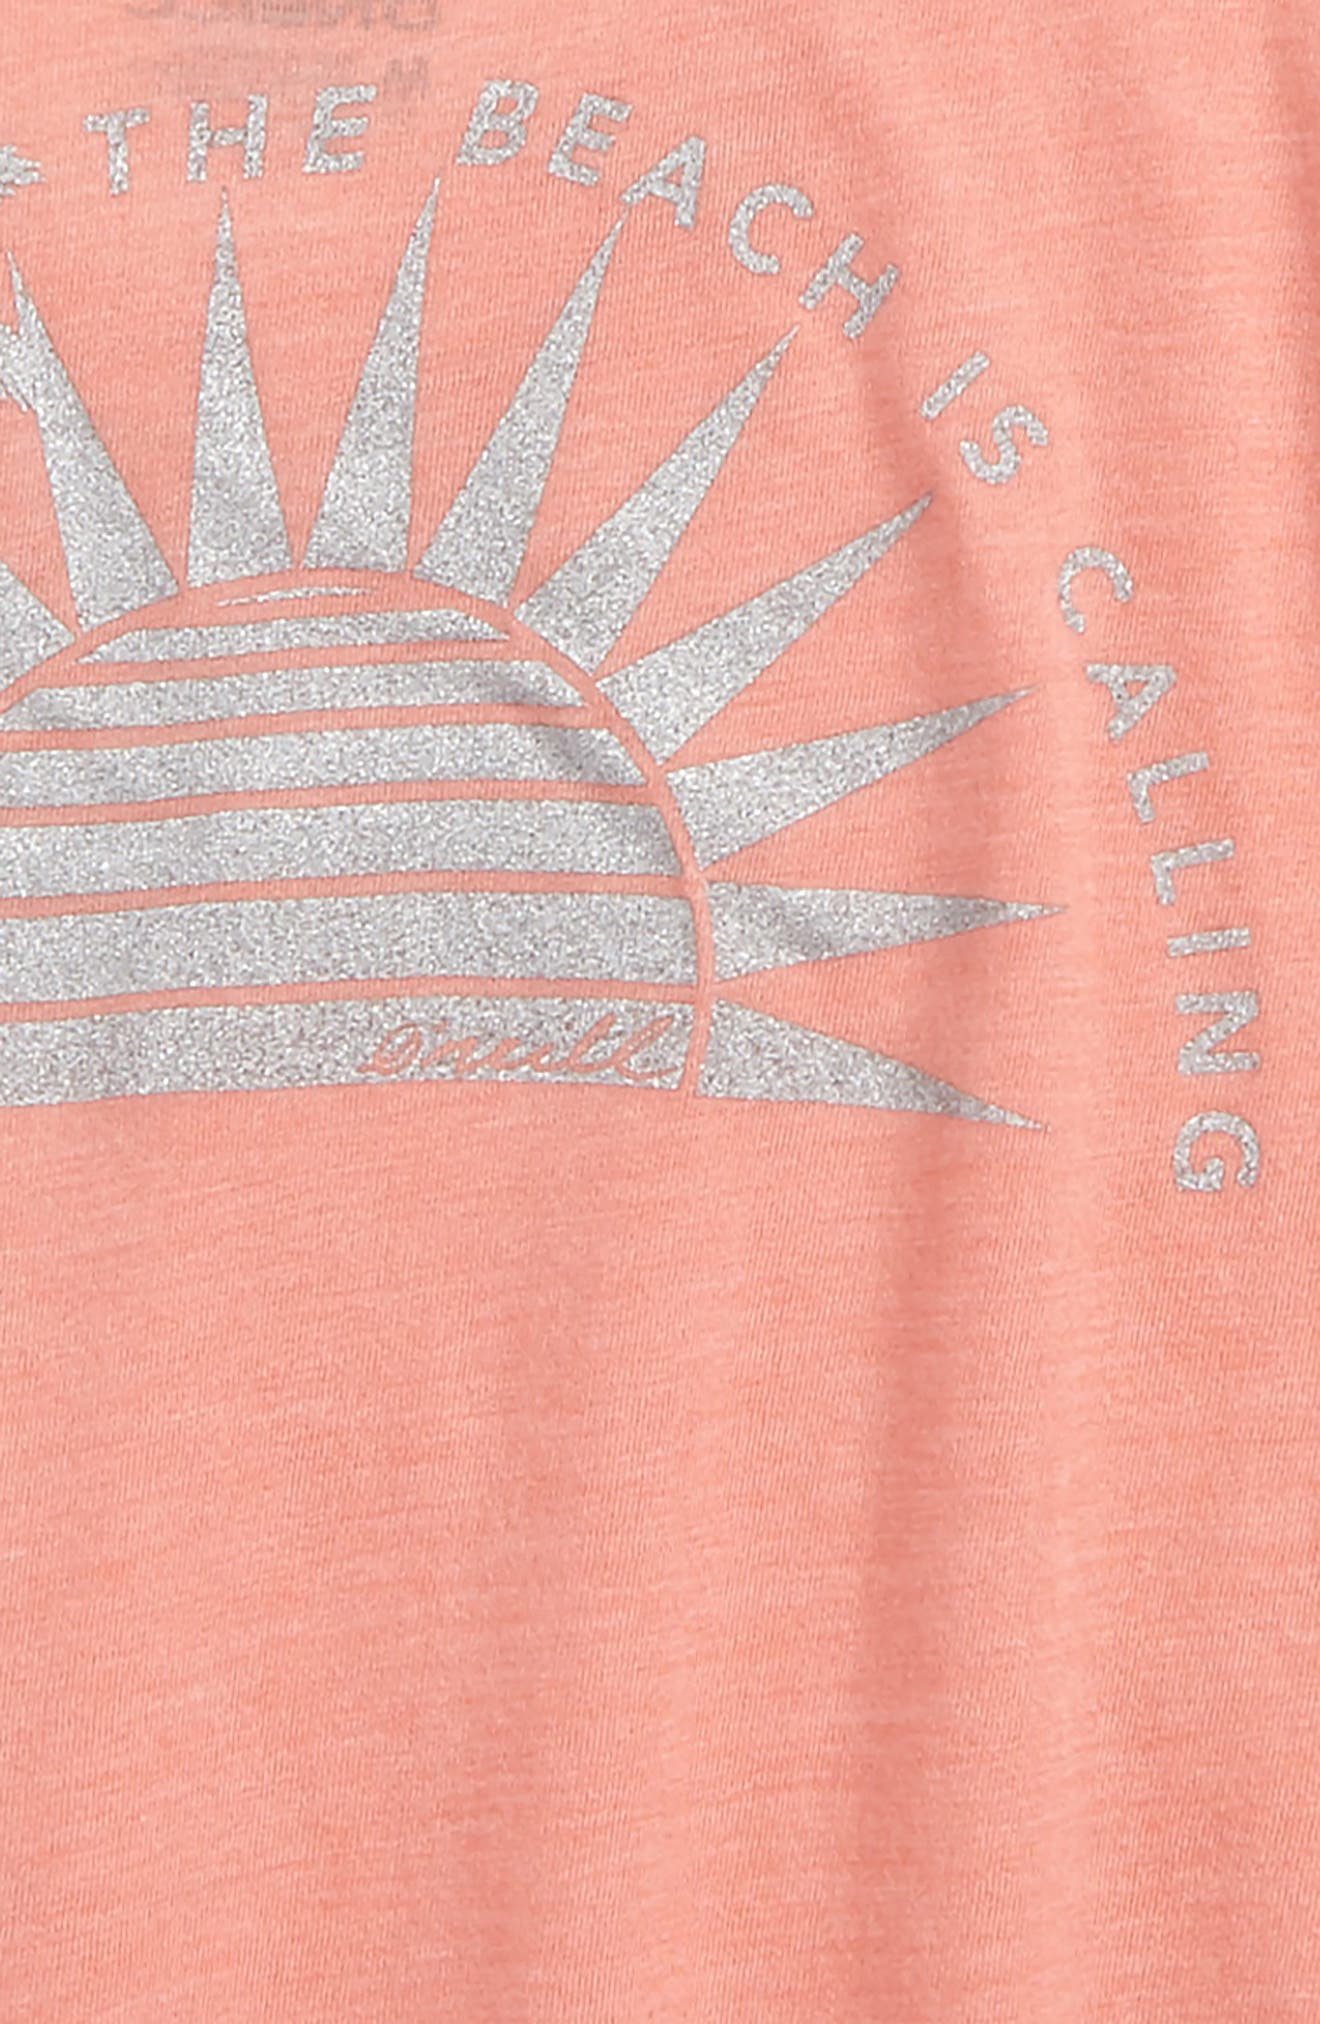 Sunny Side Graphic Tee,                             Alternate thumbnail 4, color,                             Terracotta- Cla